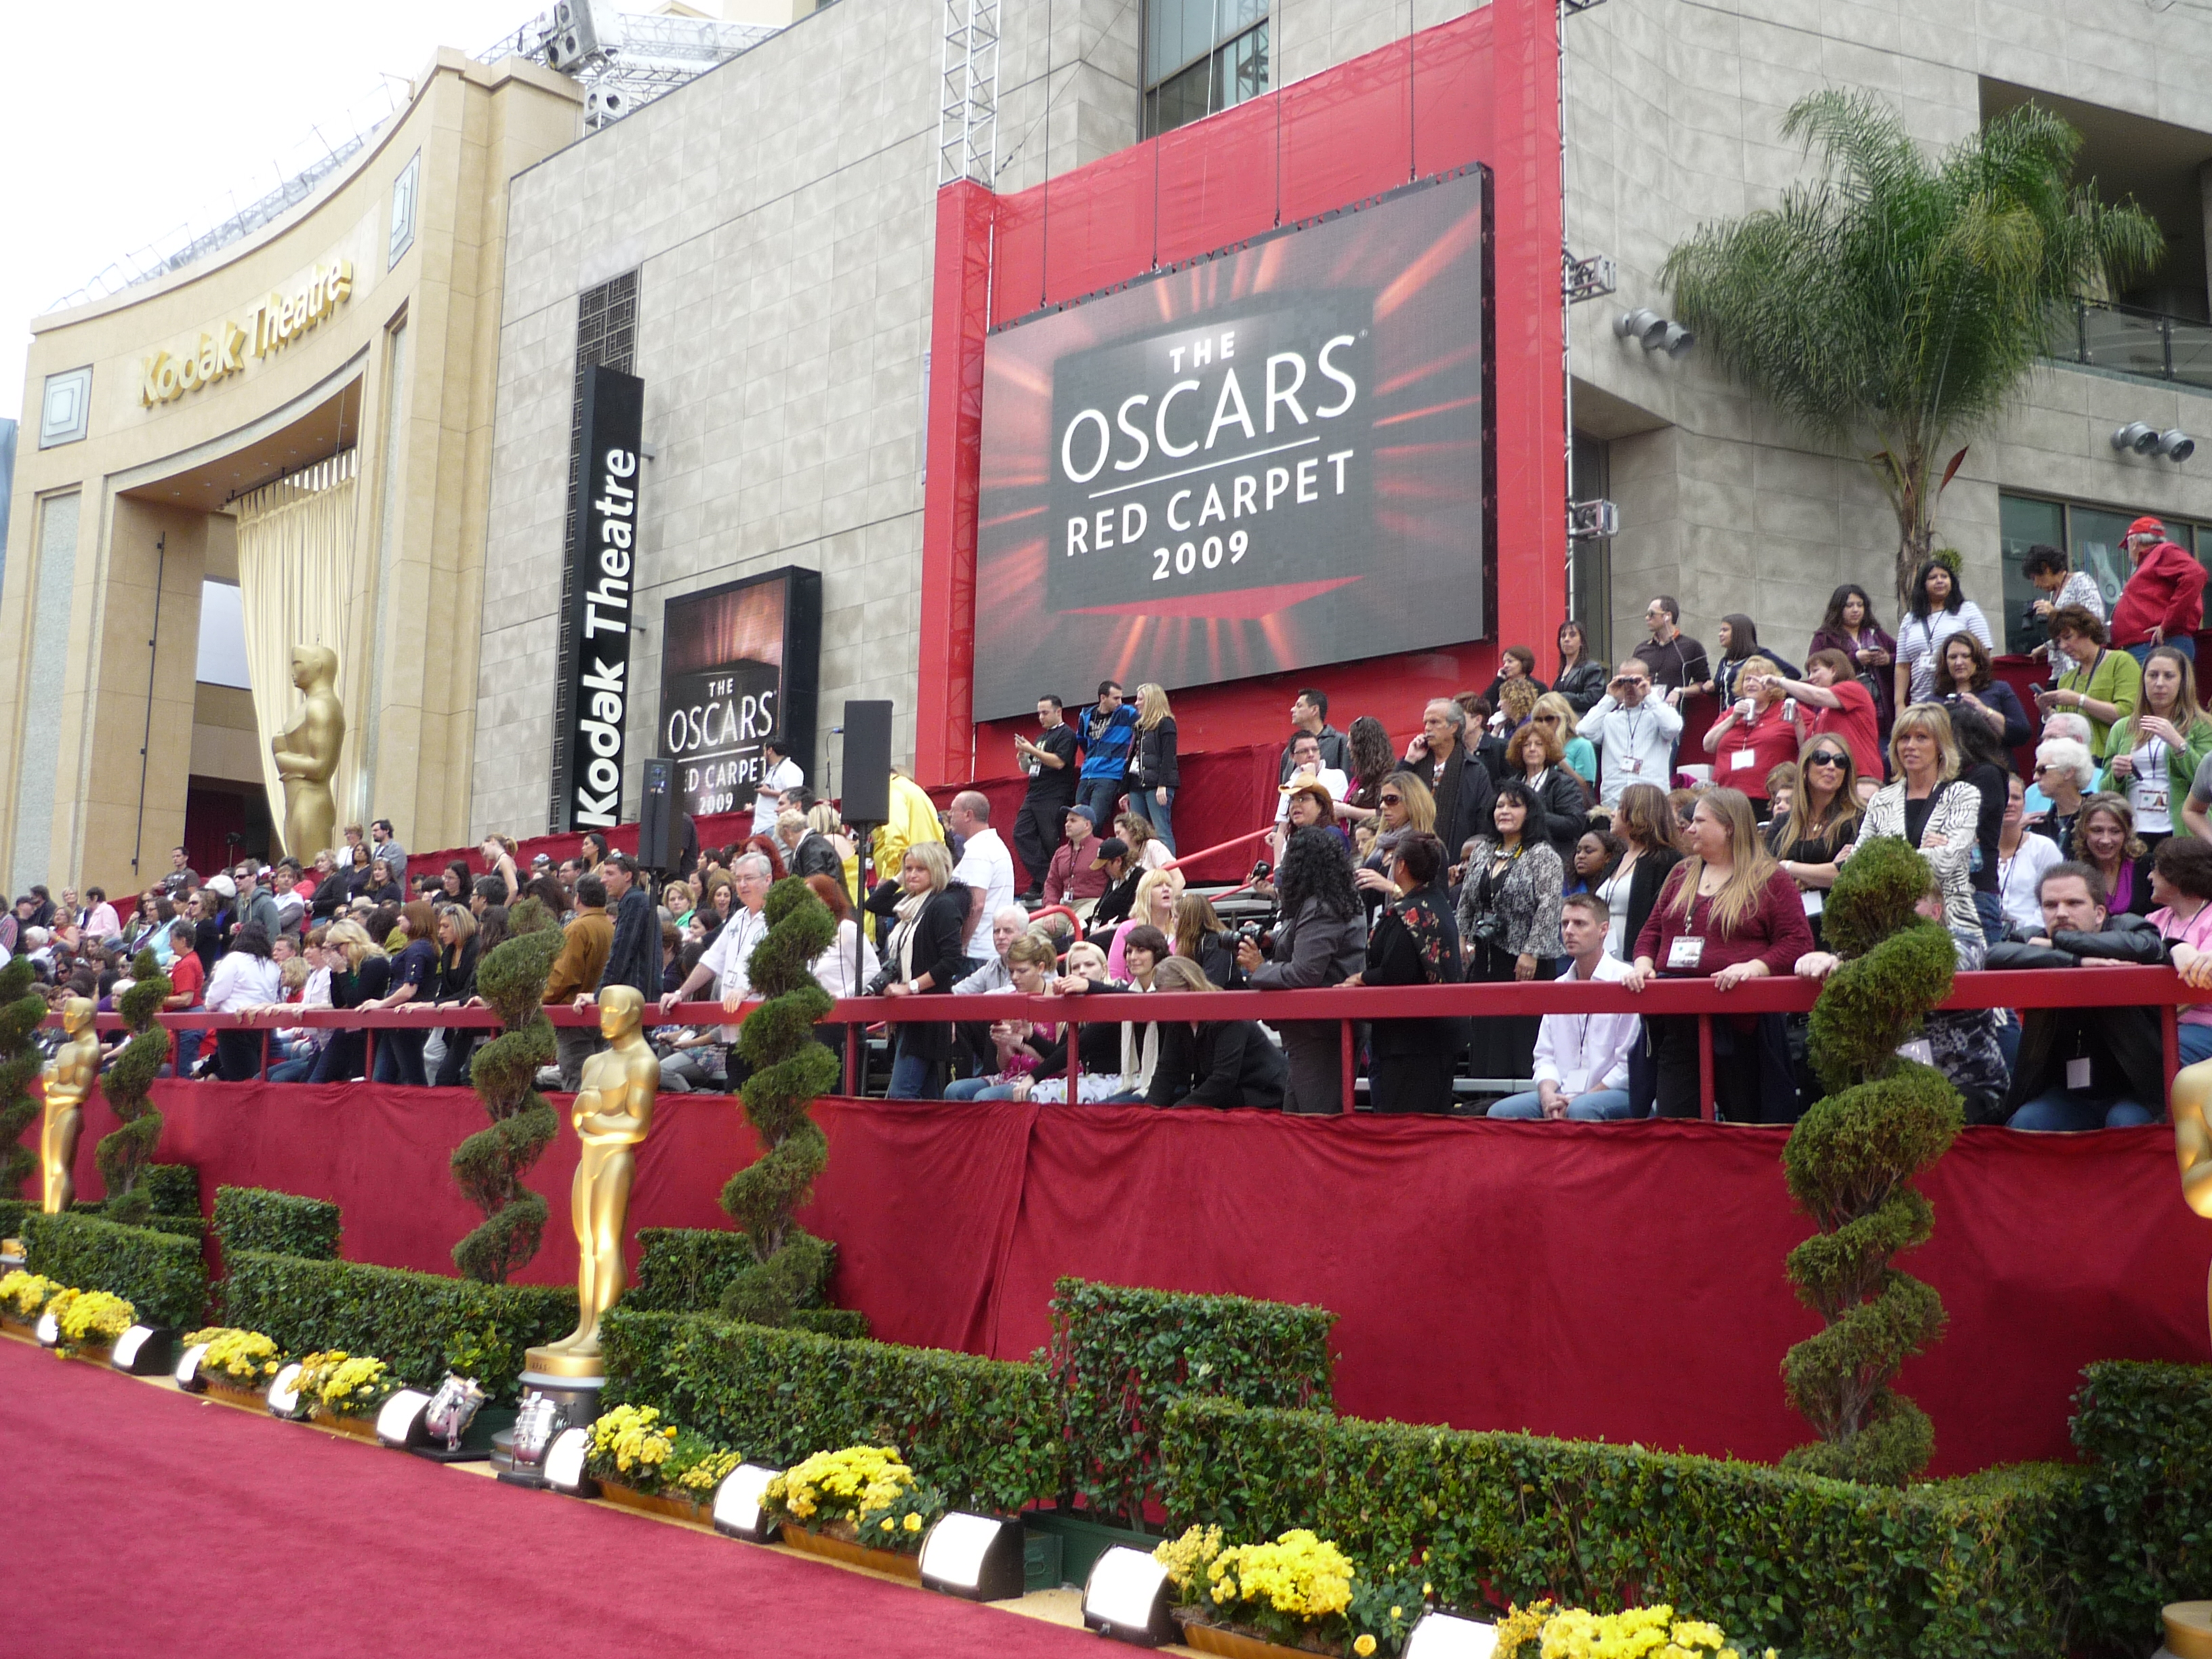 File:Red carpet Academy Awards 2009.jpg - Wikimedia Commons